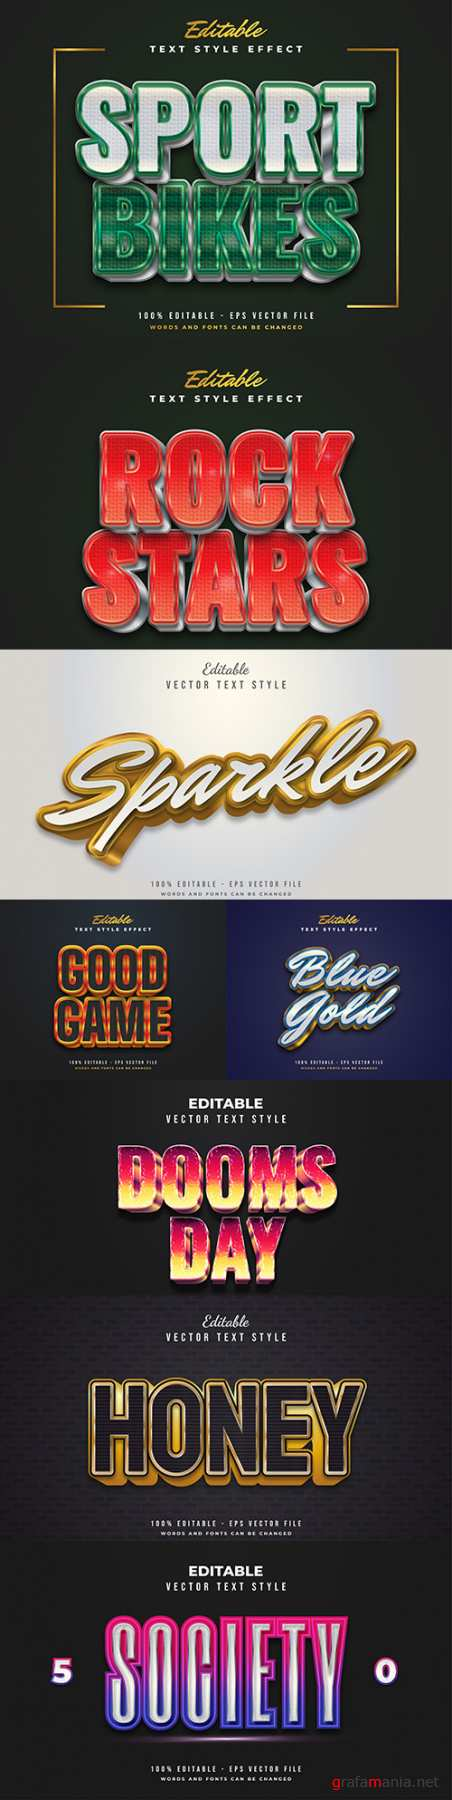 Editable font and 3d effect text design collection illustration 48